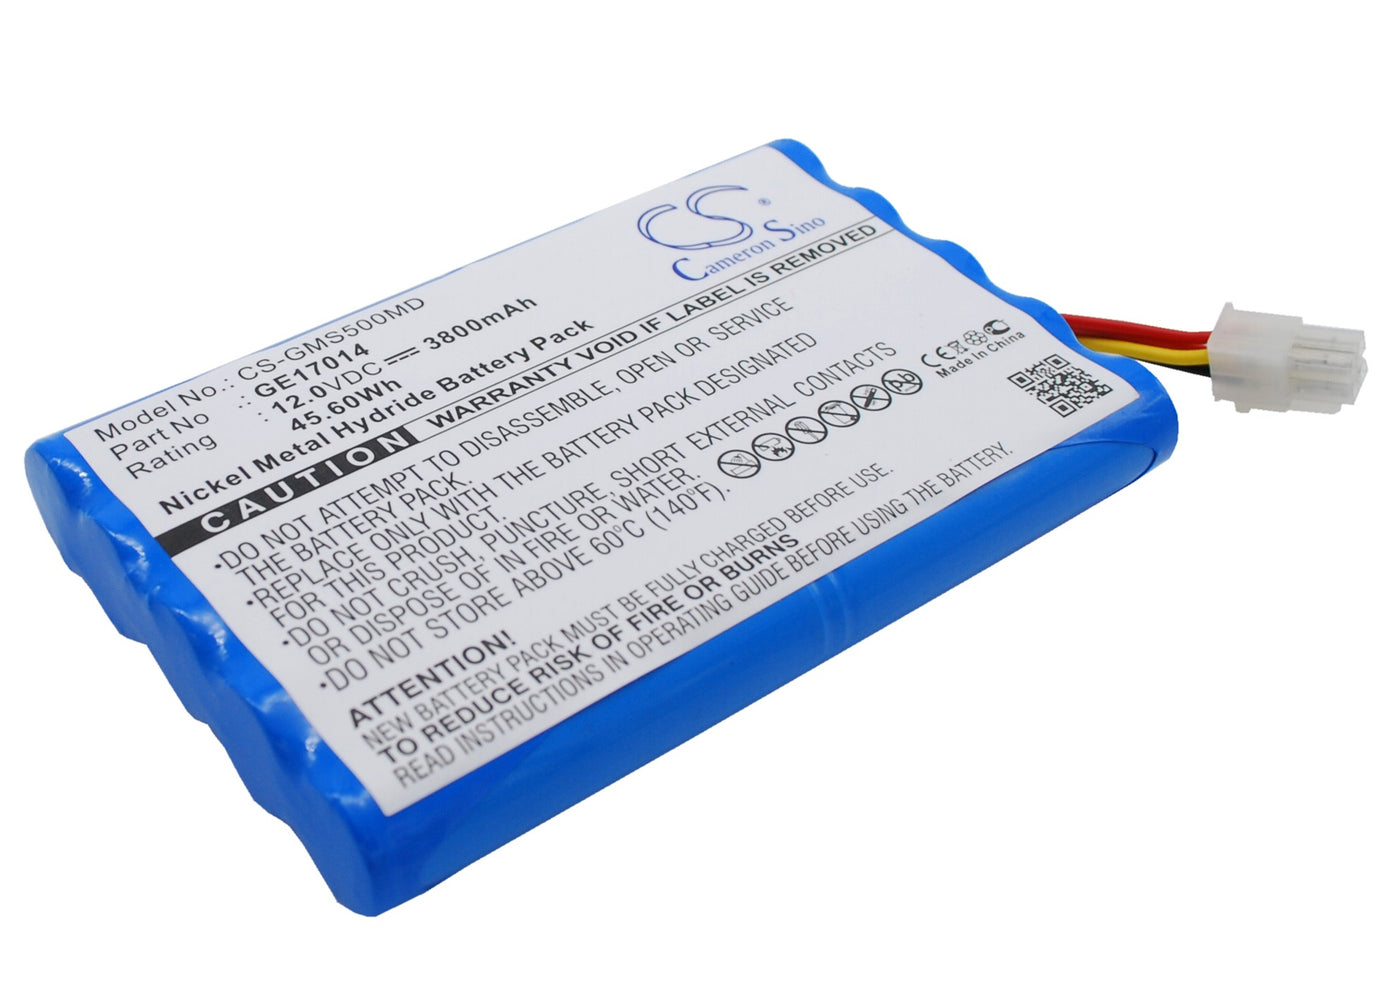 CS-GMS500MD Cameron Sino Battery